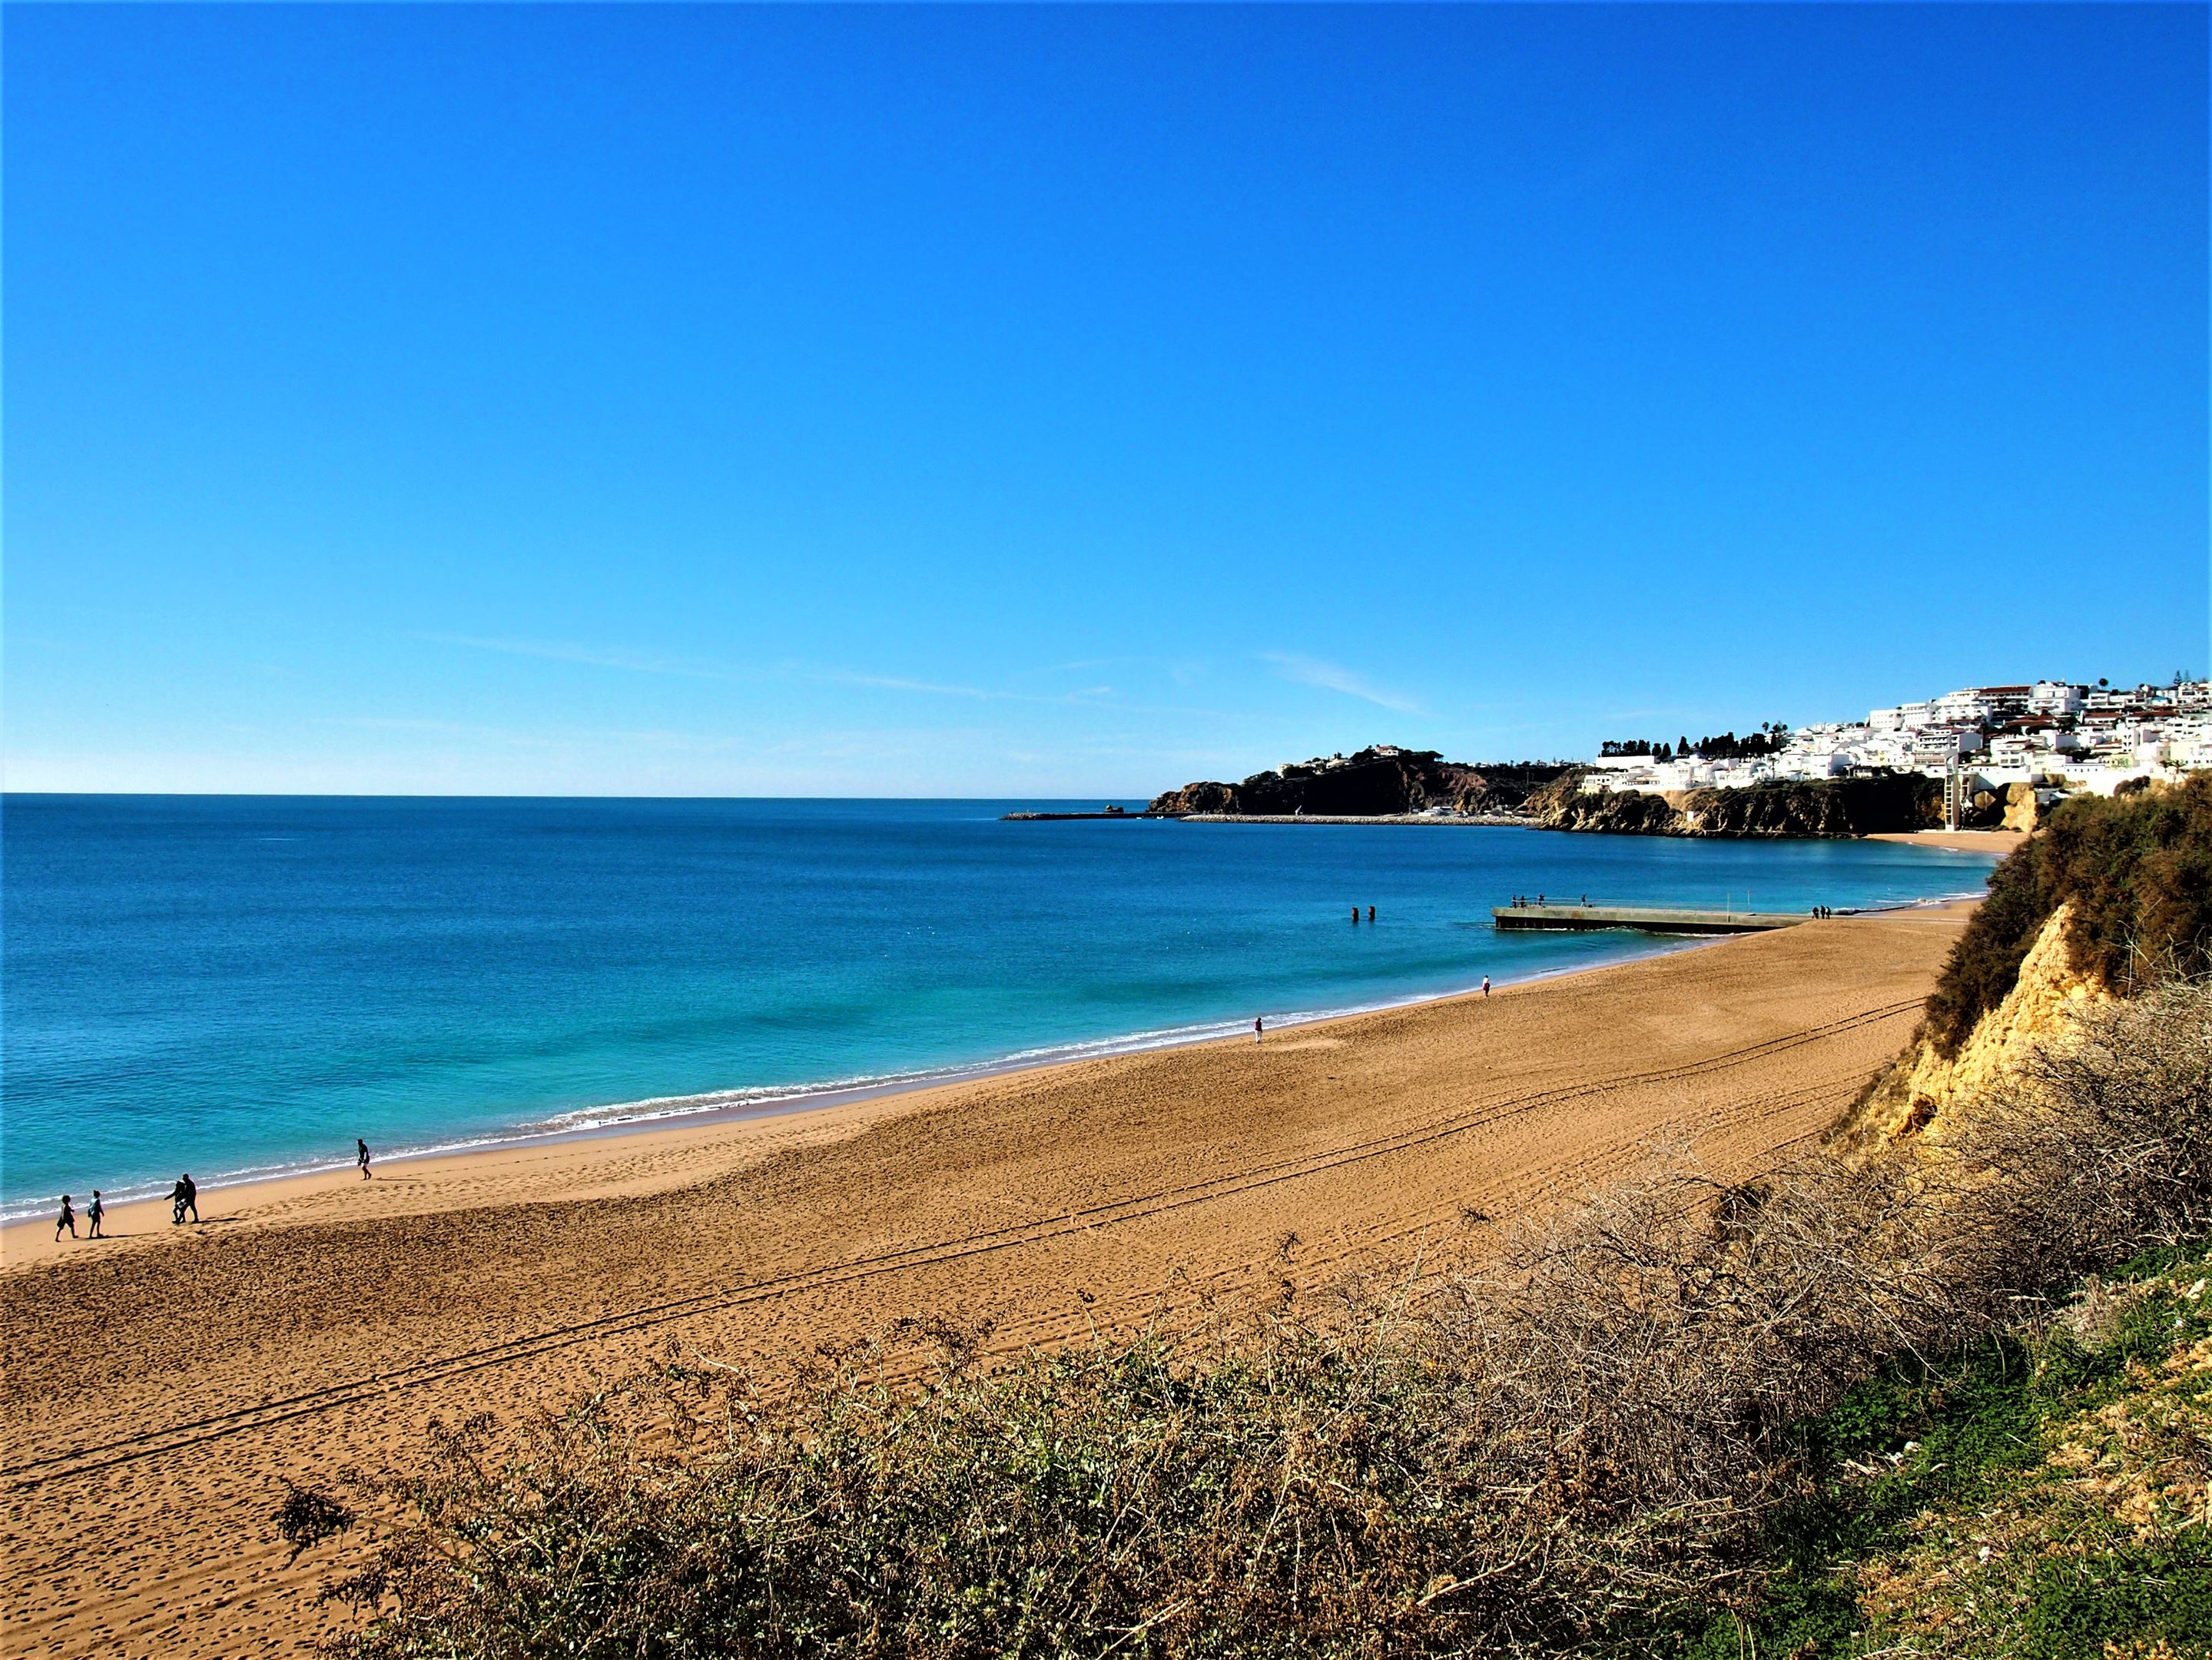 Praia do Inatel. Looking towards Praia do Pescadores in the background, Albufeira.